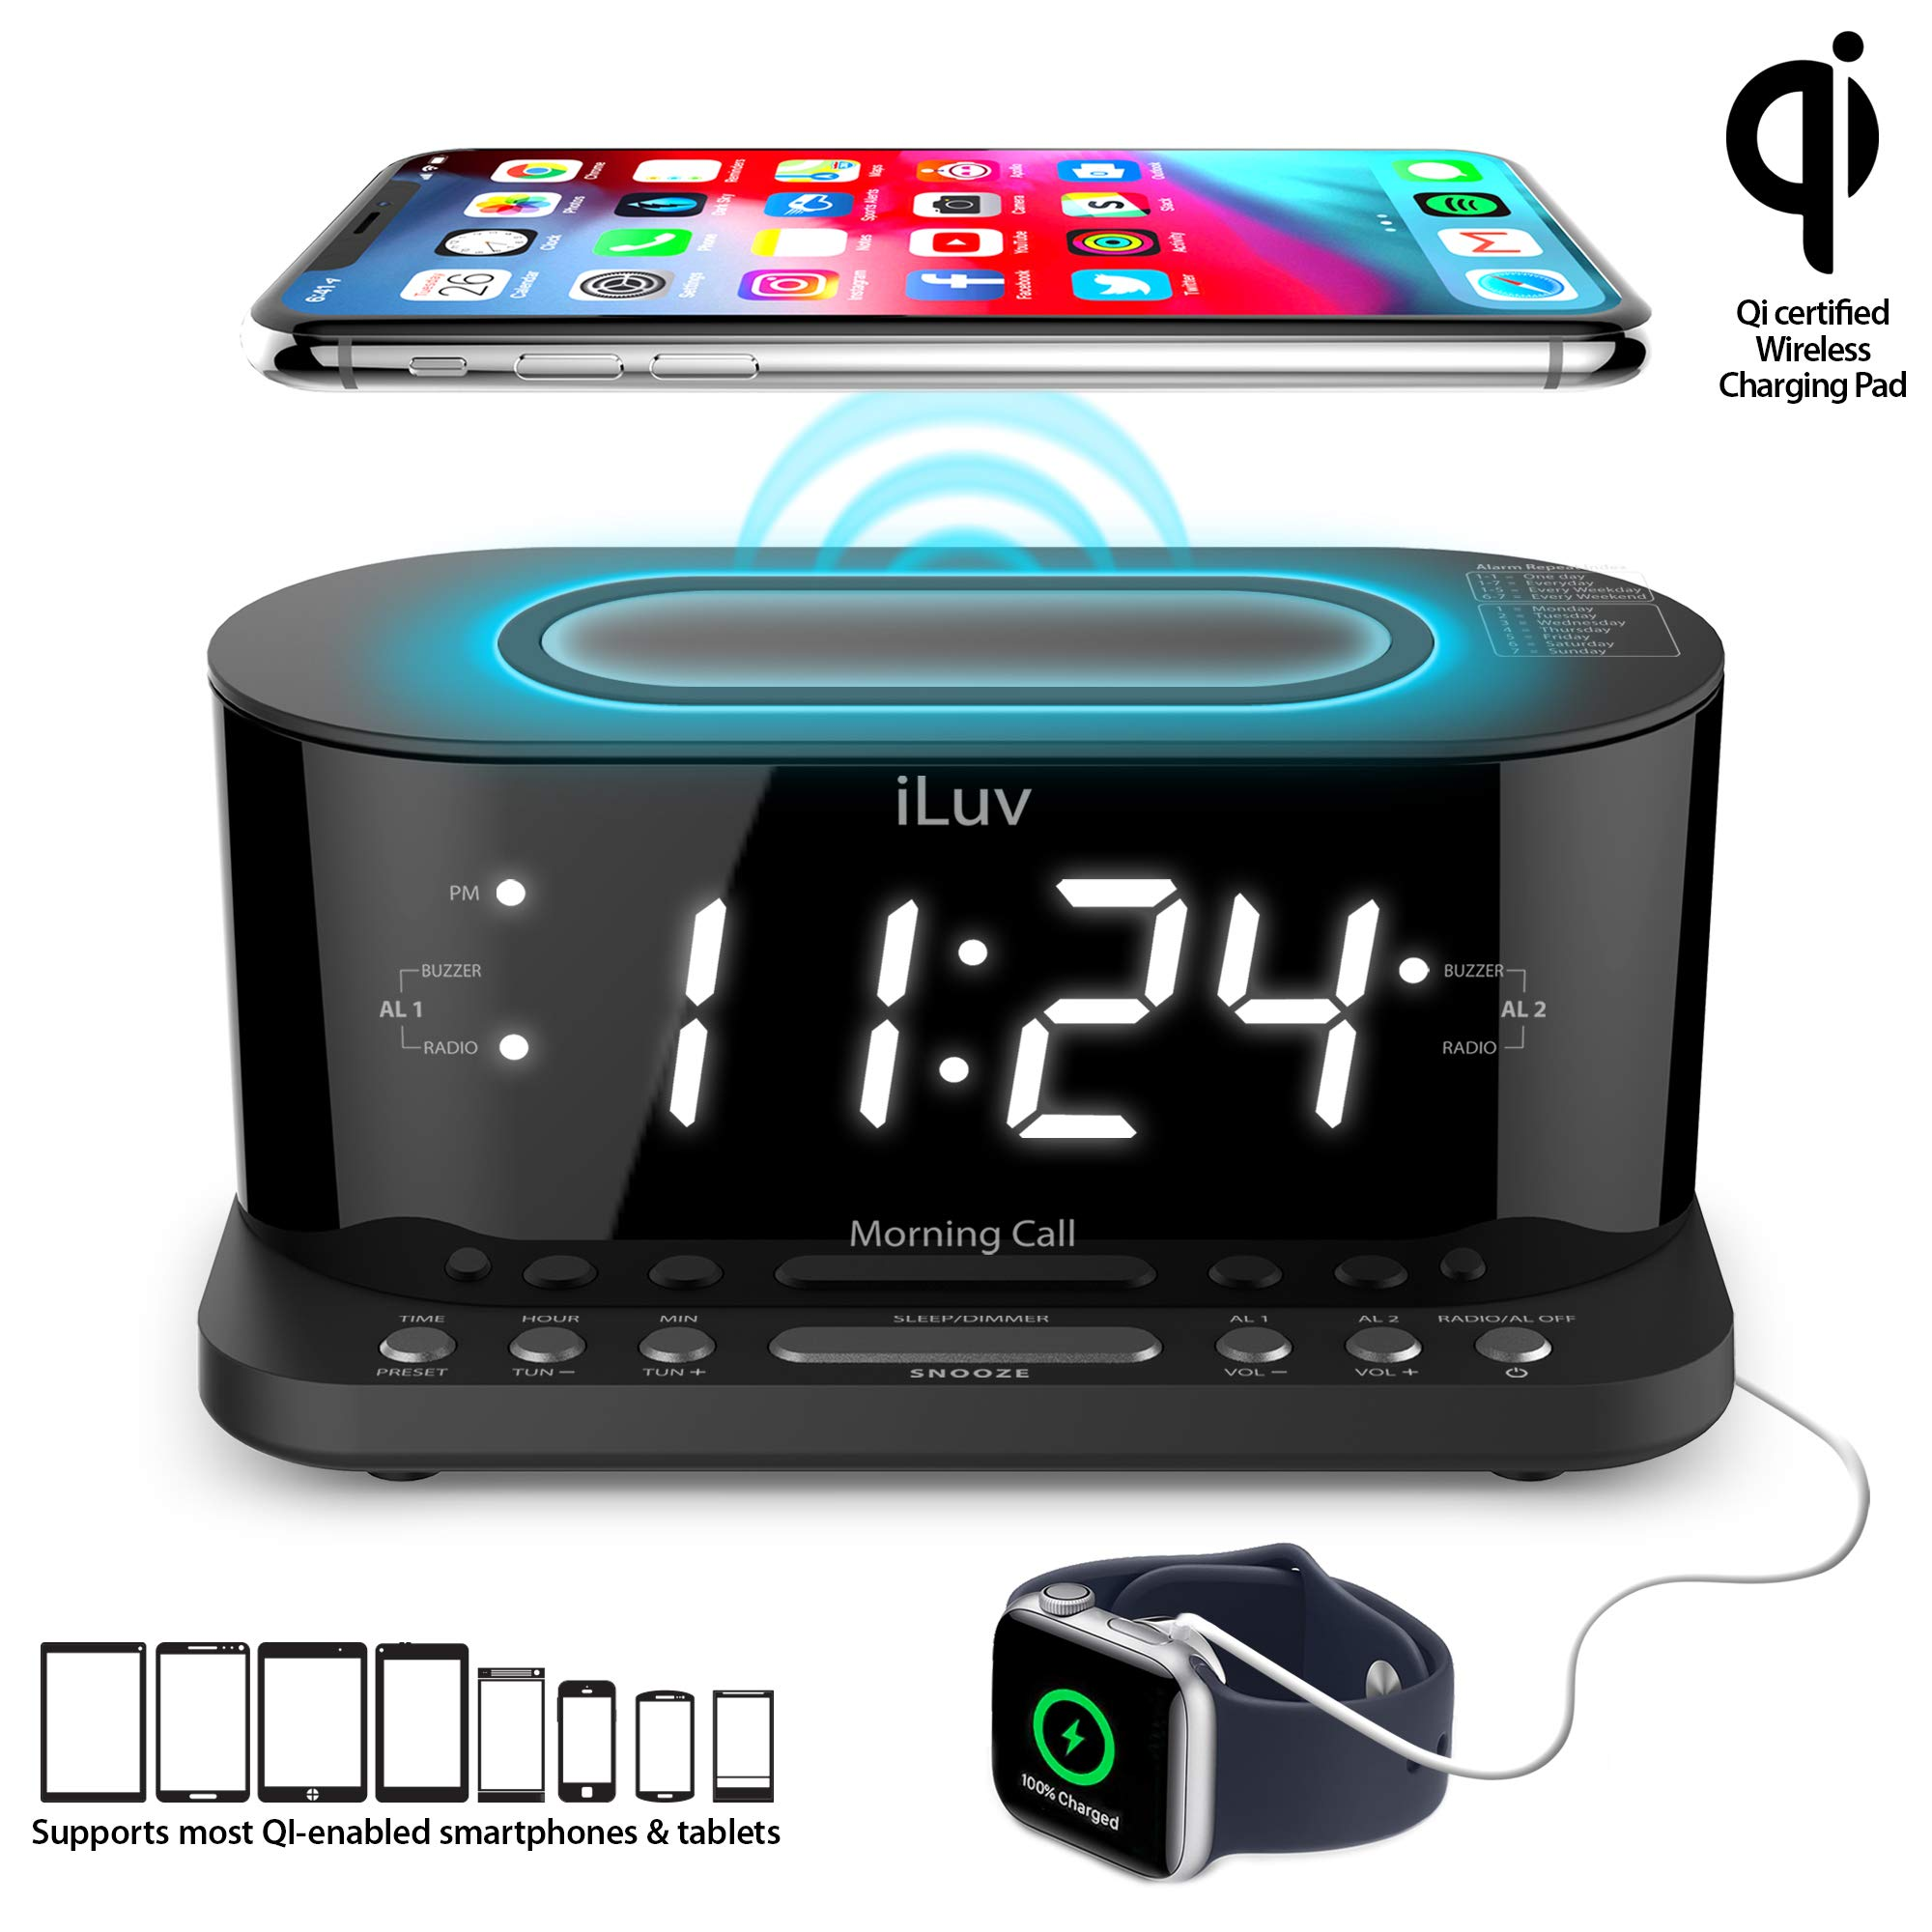 iLuv Wireless Charging Certified 100 240V